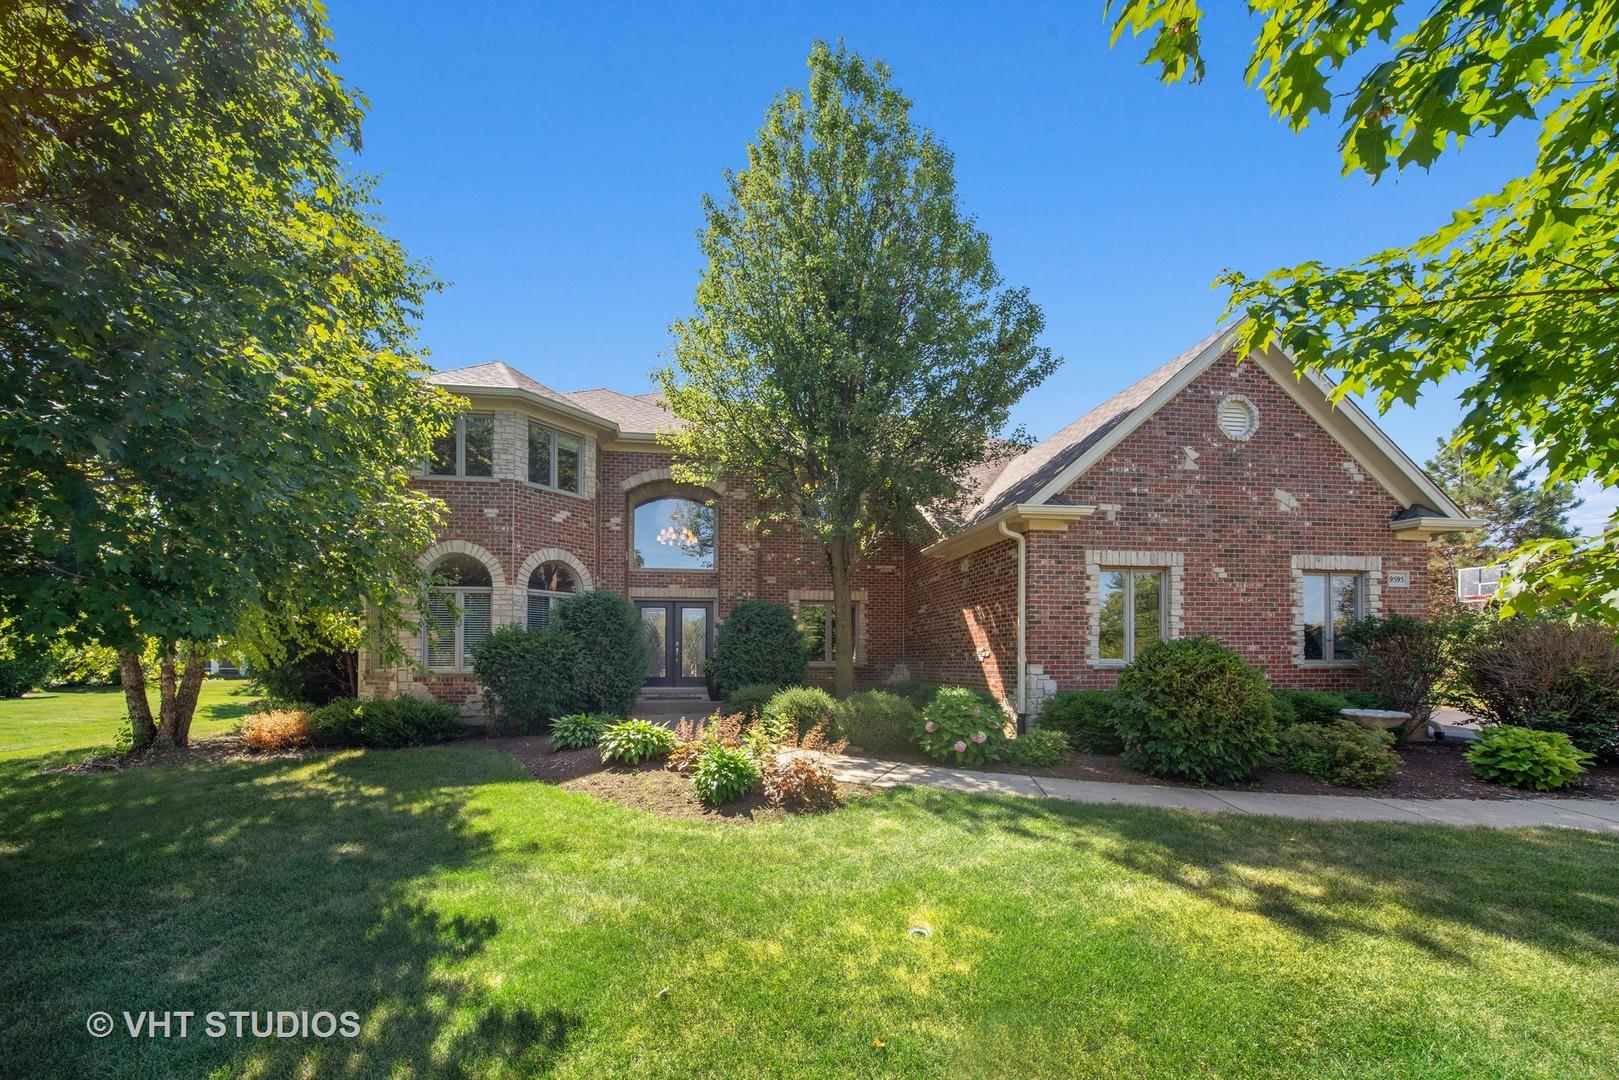 9595 Player Court, Lakewood, IL 60014 - #: 10481663